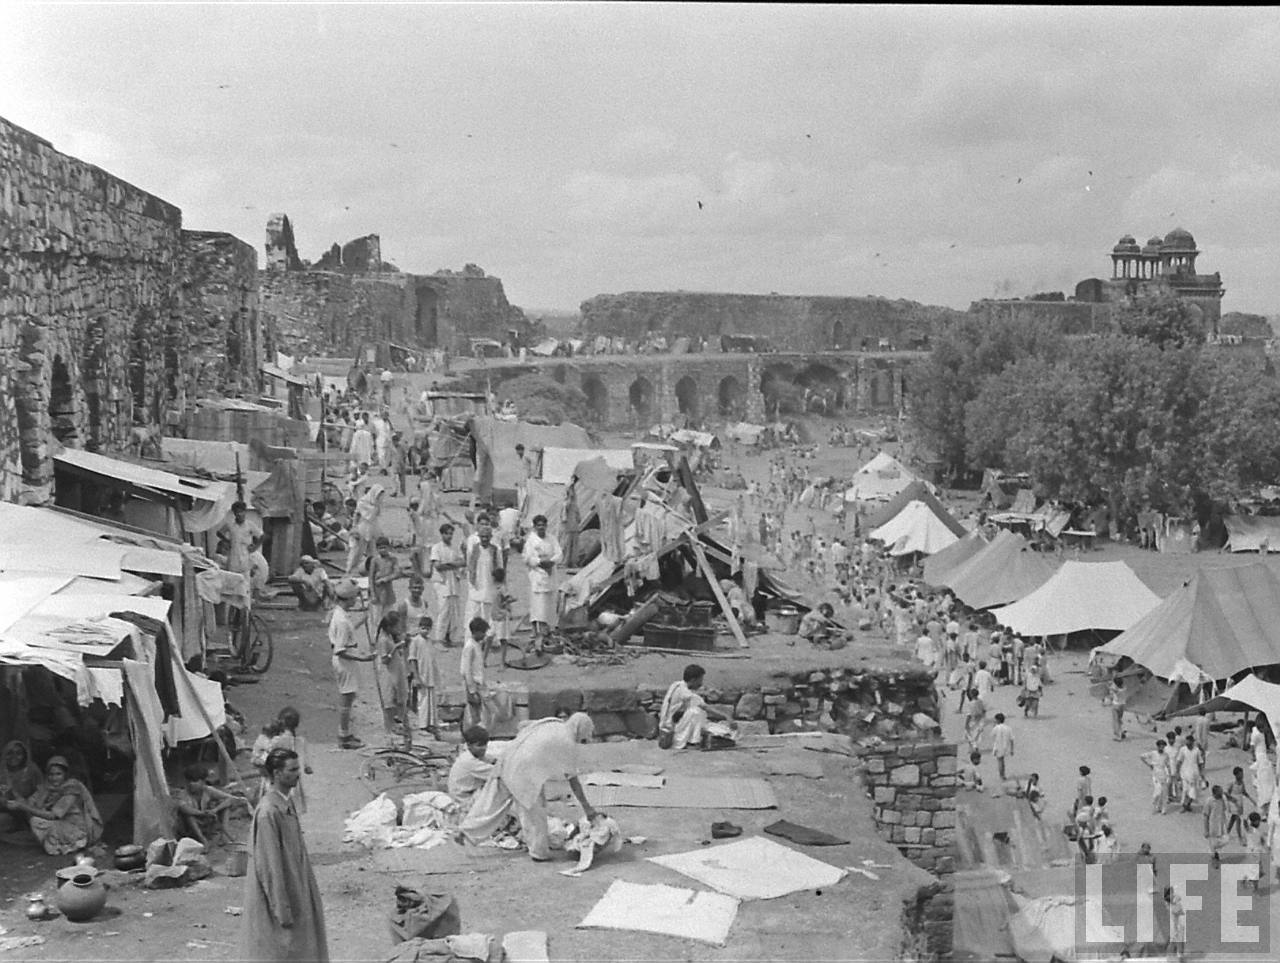 partition of india 1947 The british divided and quit india in 1947 the partition of india and the creation of pakistan uprooted entire communities and left unspeakable violence in its trail.